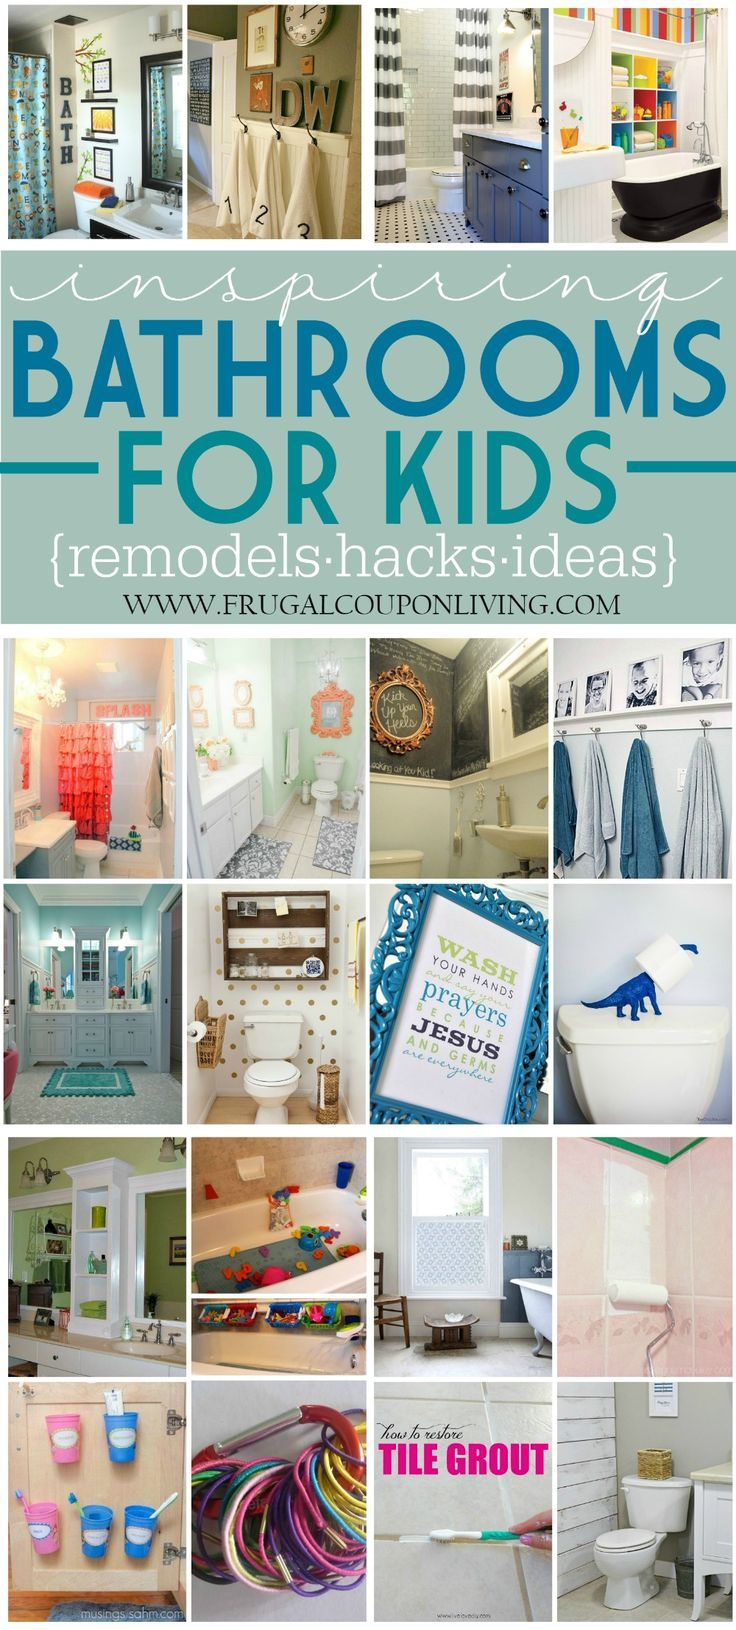 Inspiring Kids Bathrooms Decorations Remodels And Hacks On Frugal Coupon Living Girls Bathroom